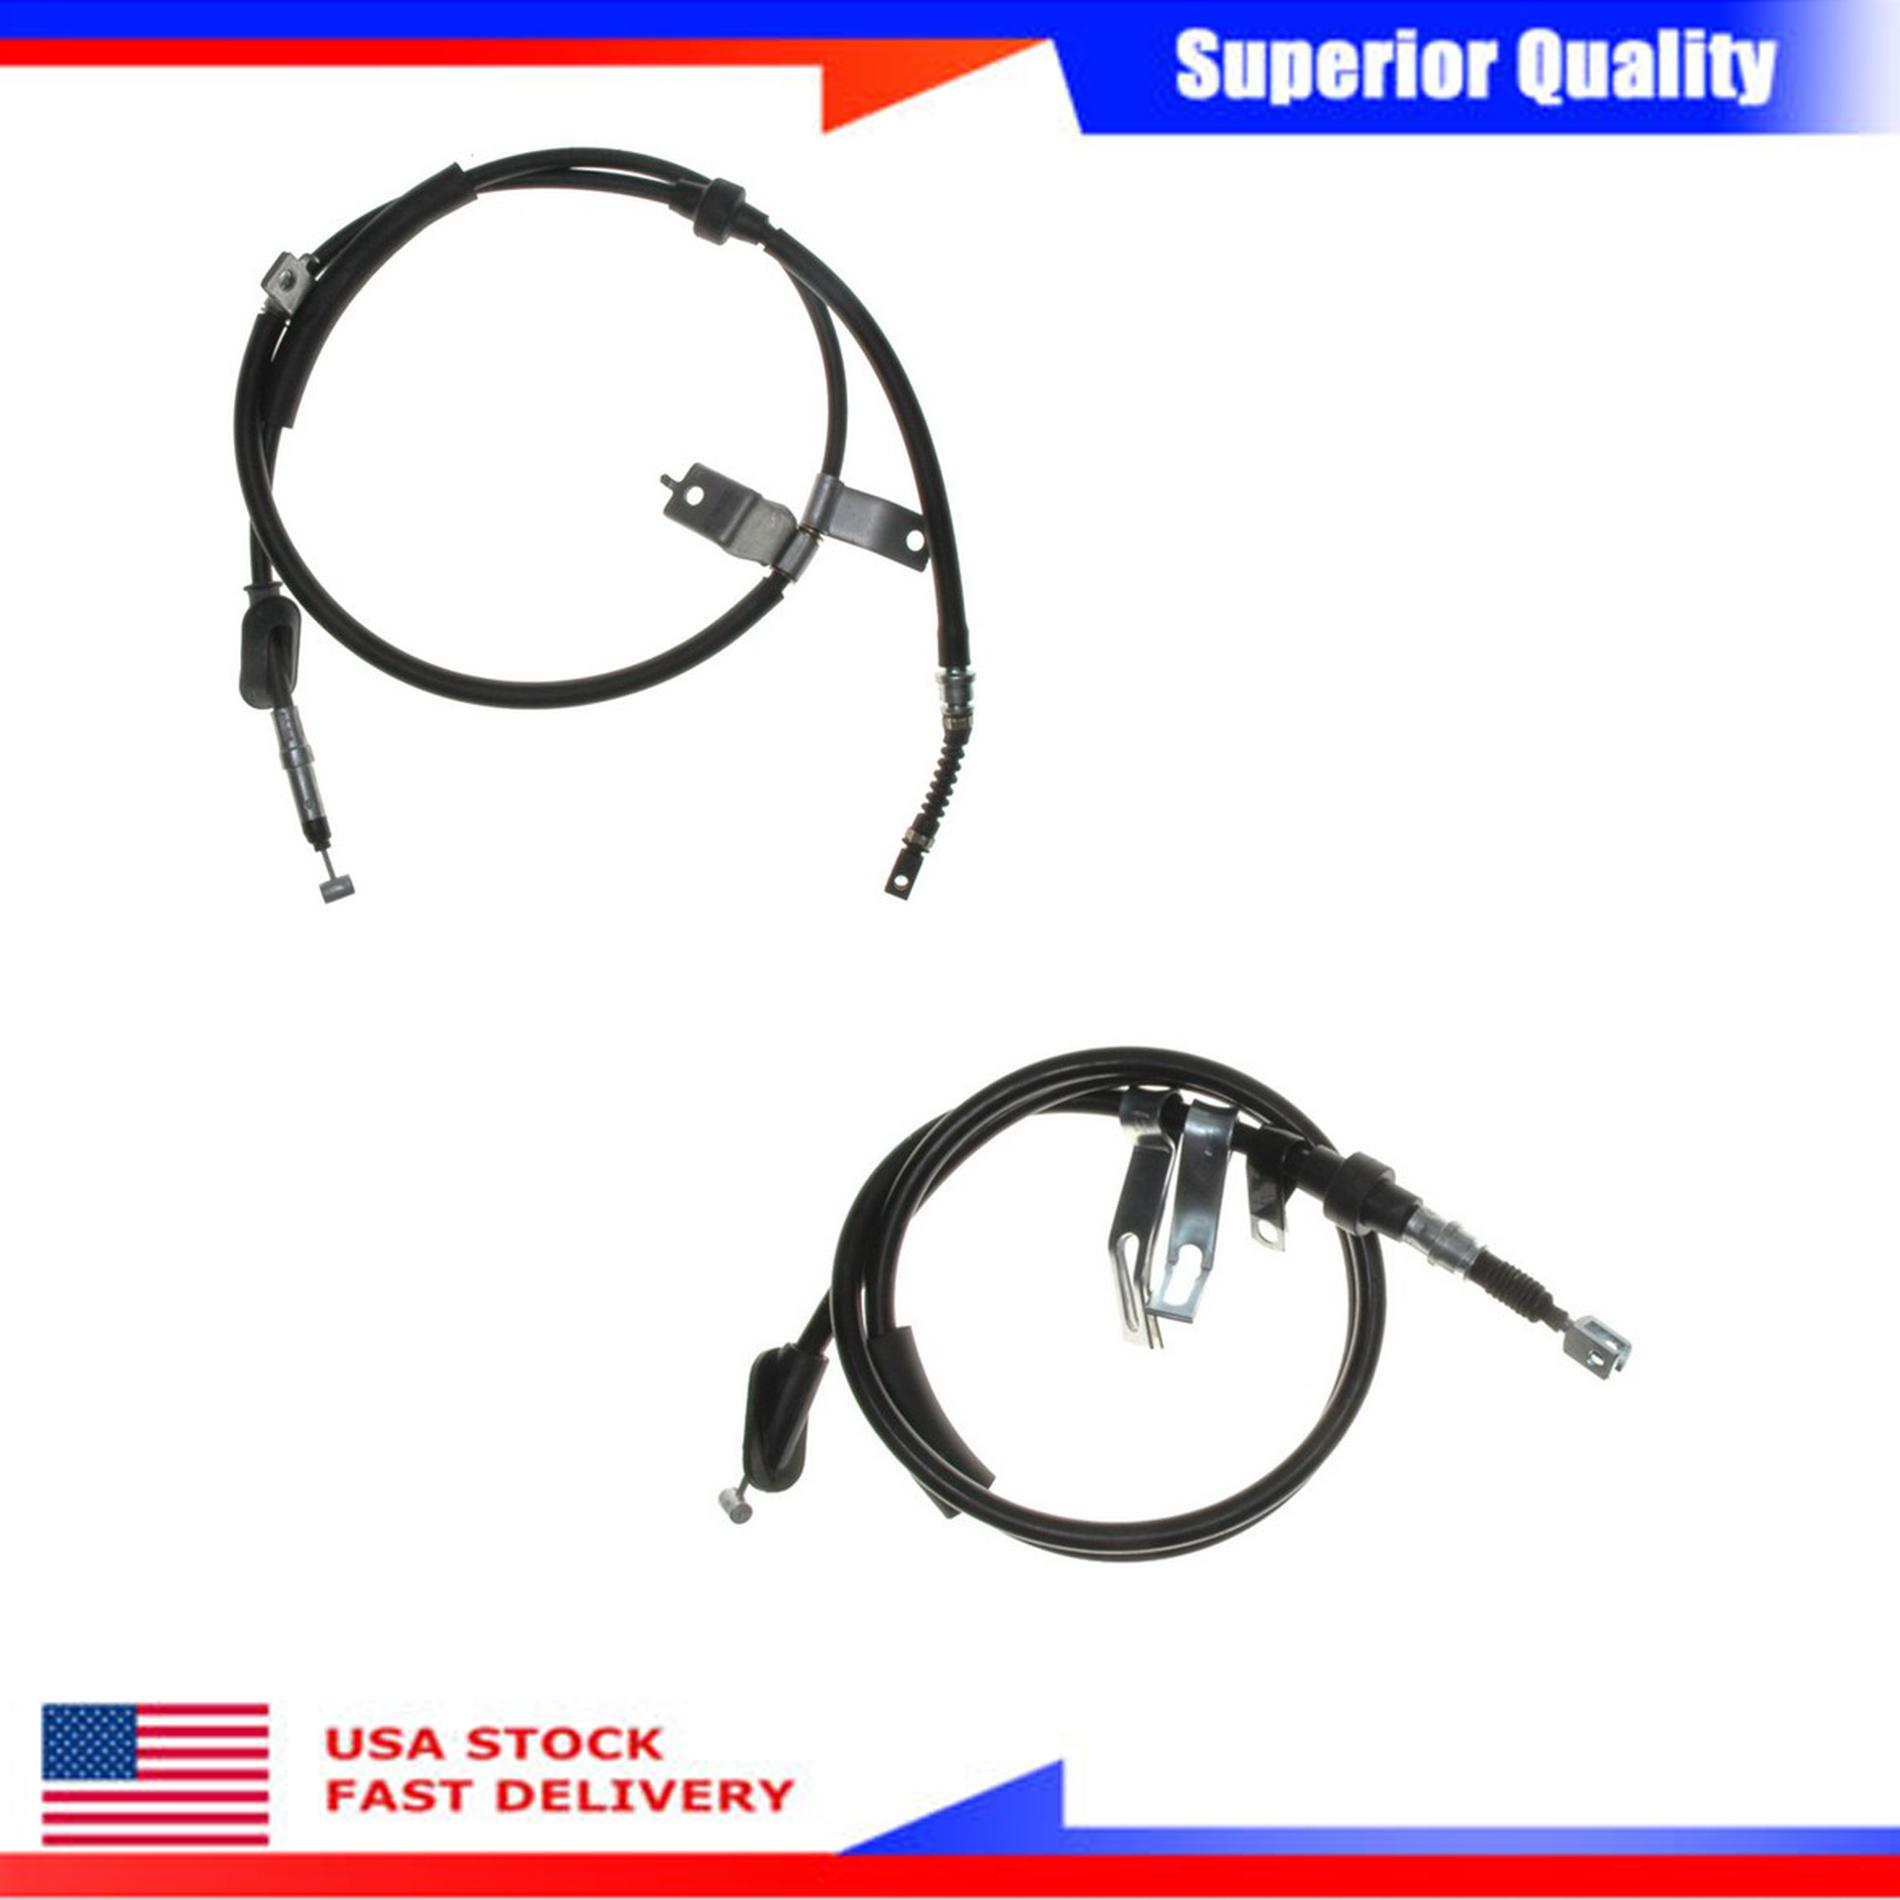 2Pcs Raybestos Parking Brake Cable Set For 1994-1999 Acura